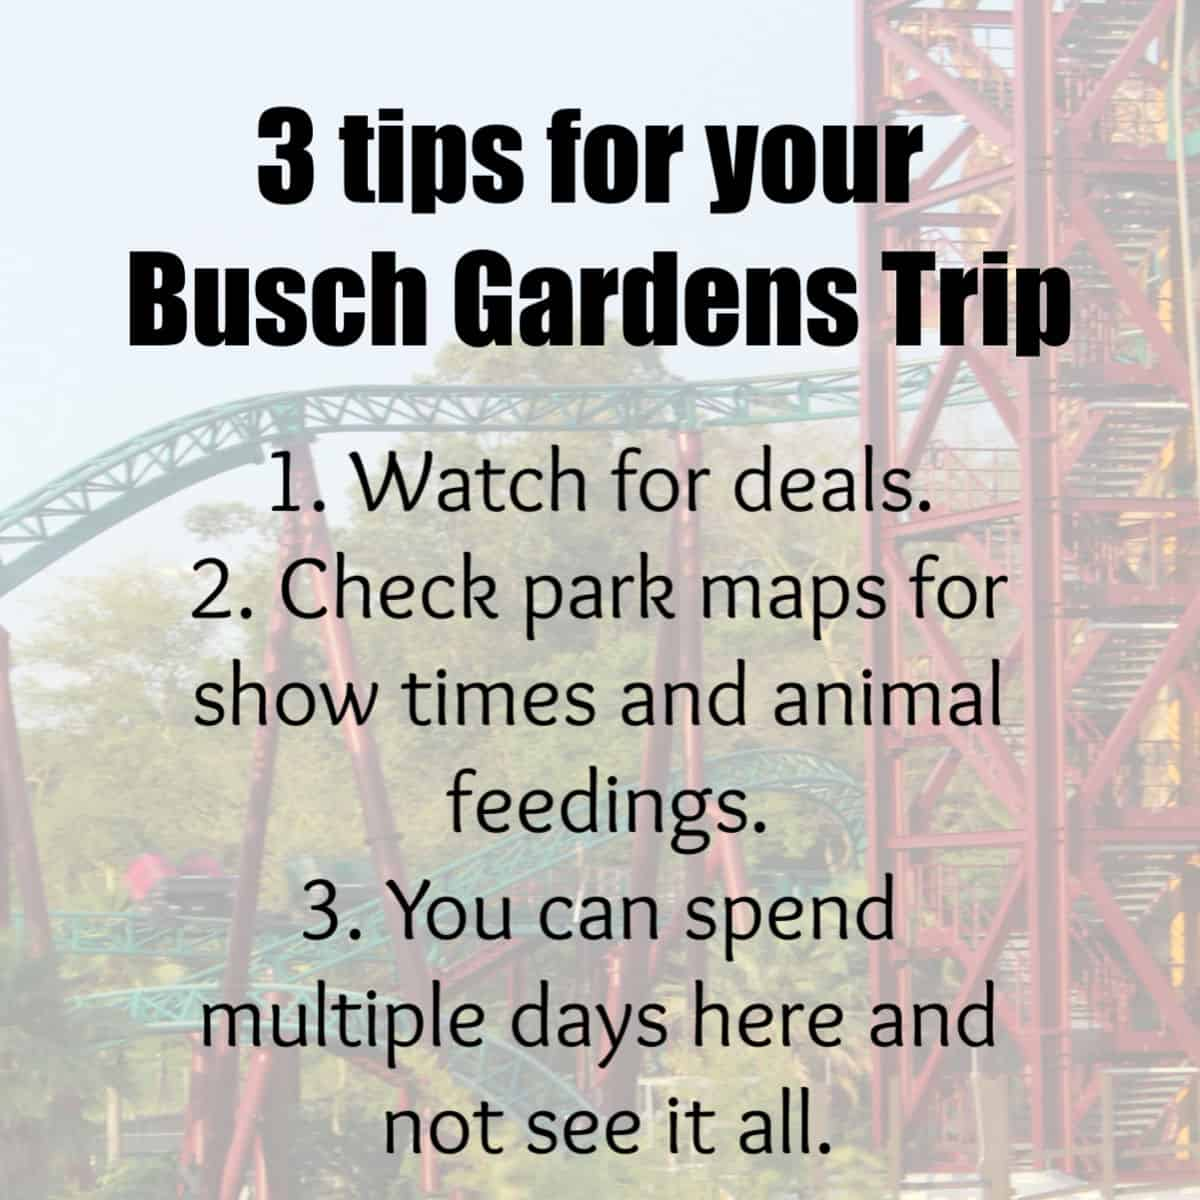 3 Tips for Your Busch Gardens Trip